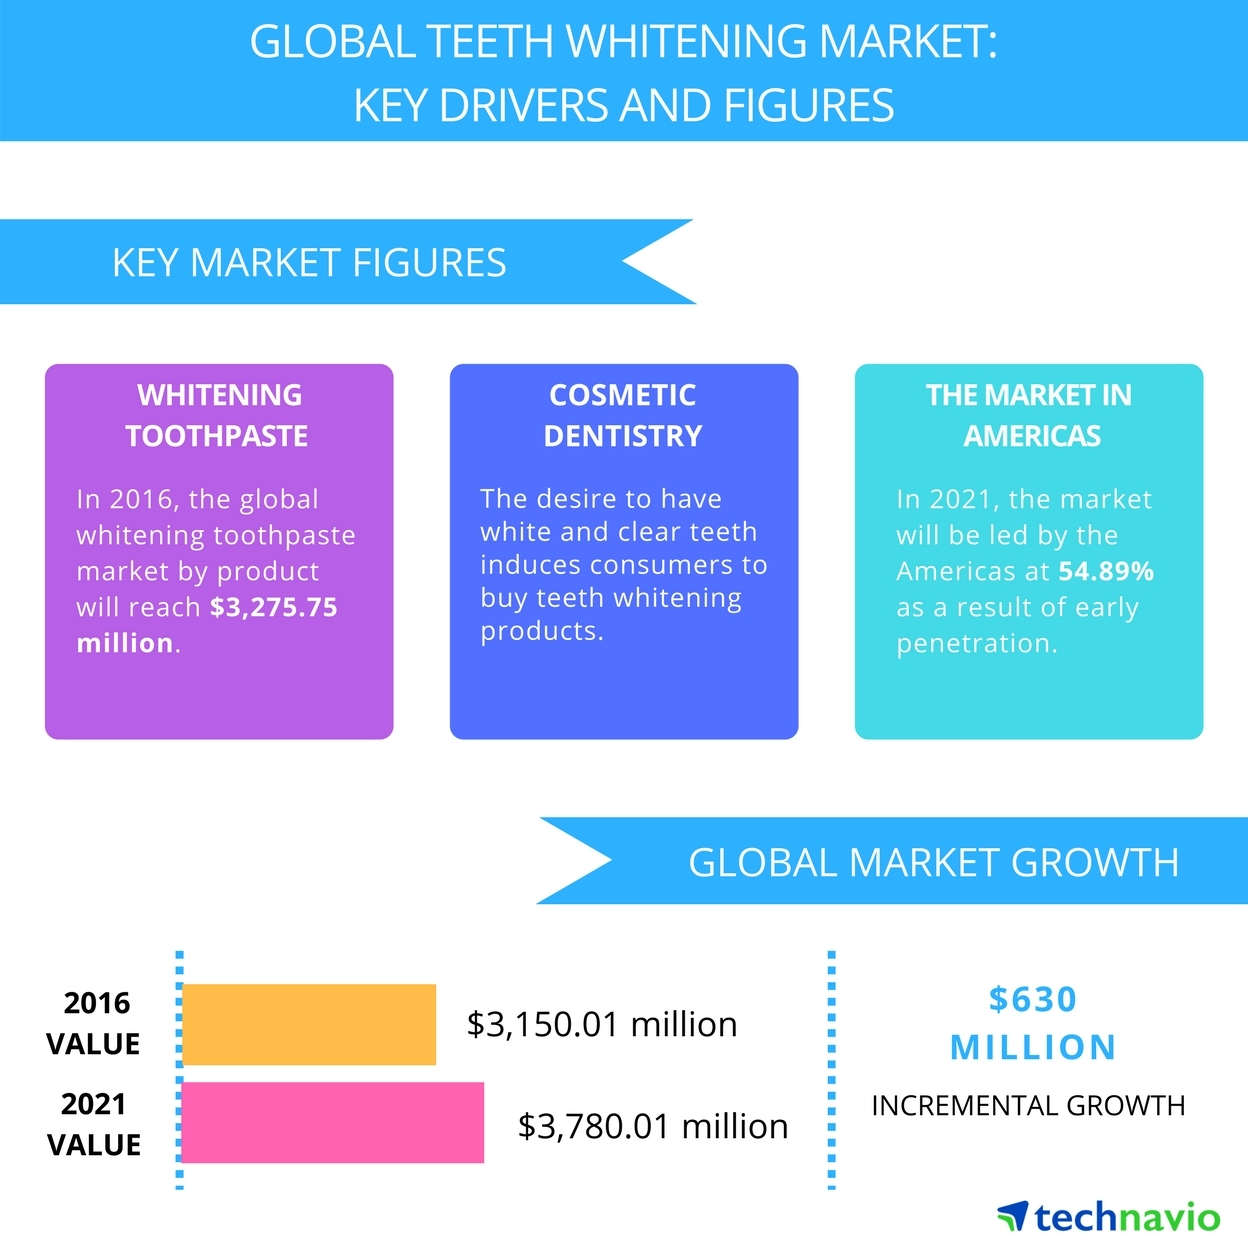 Teeth Whitening Market Drivers And Forecasts By Technavio